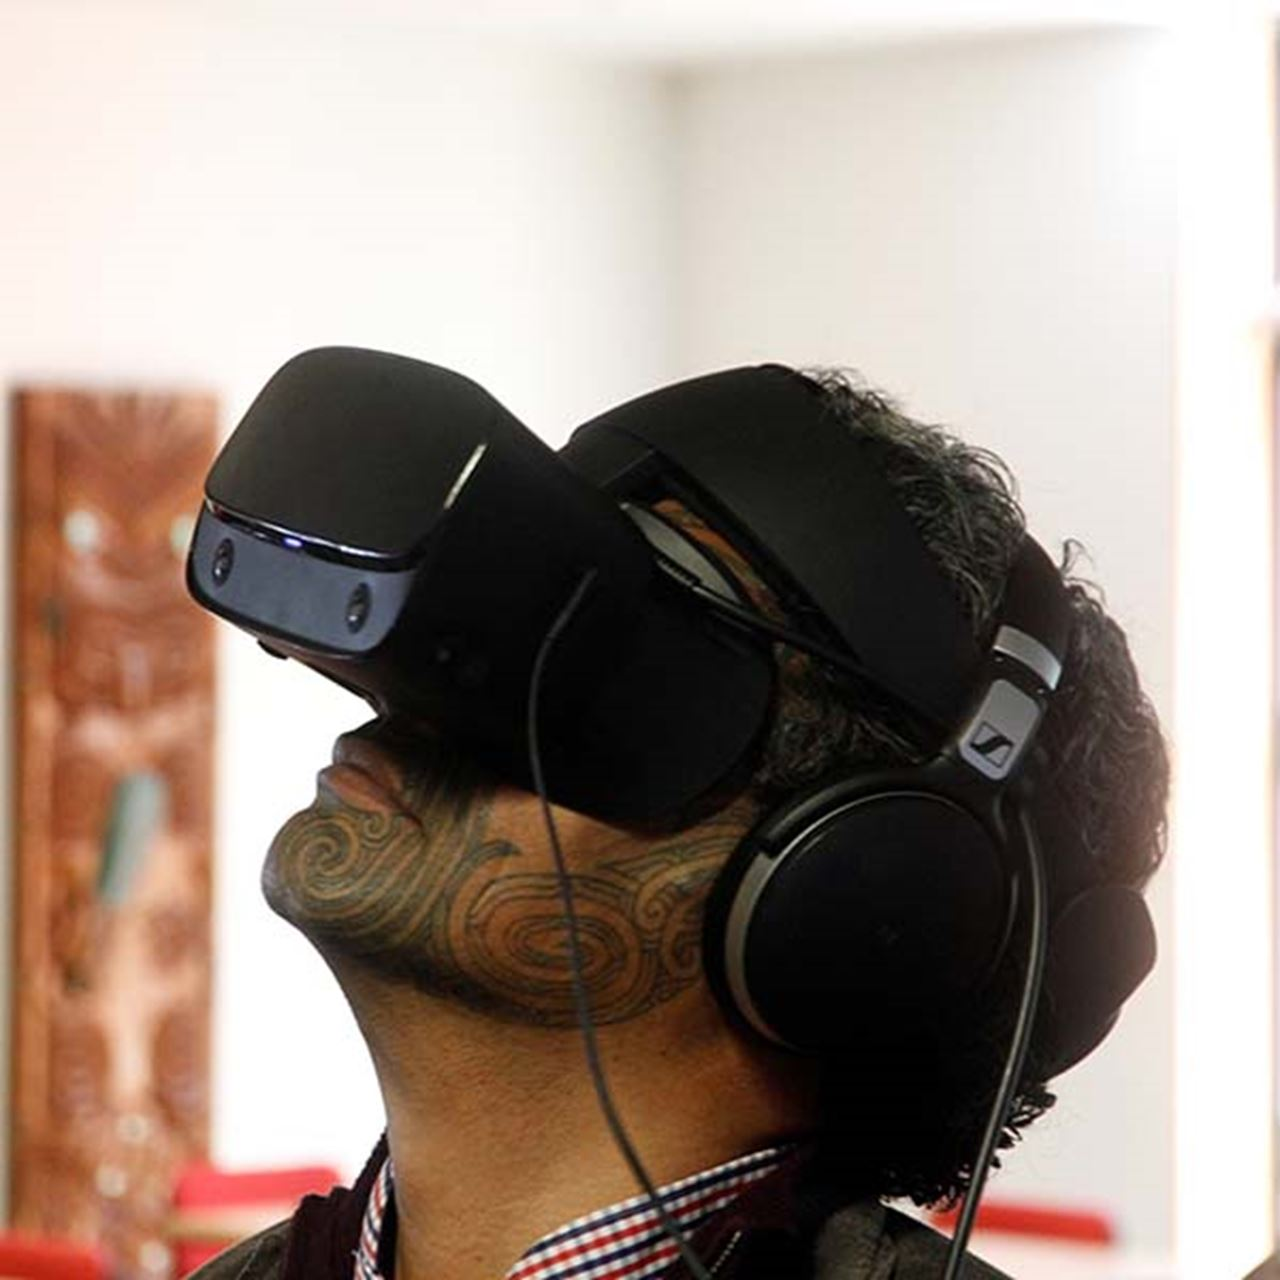 Dr Reuben Collier checks out the VR story of Whakatāne